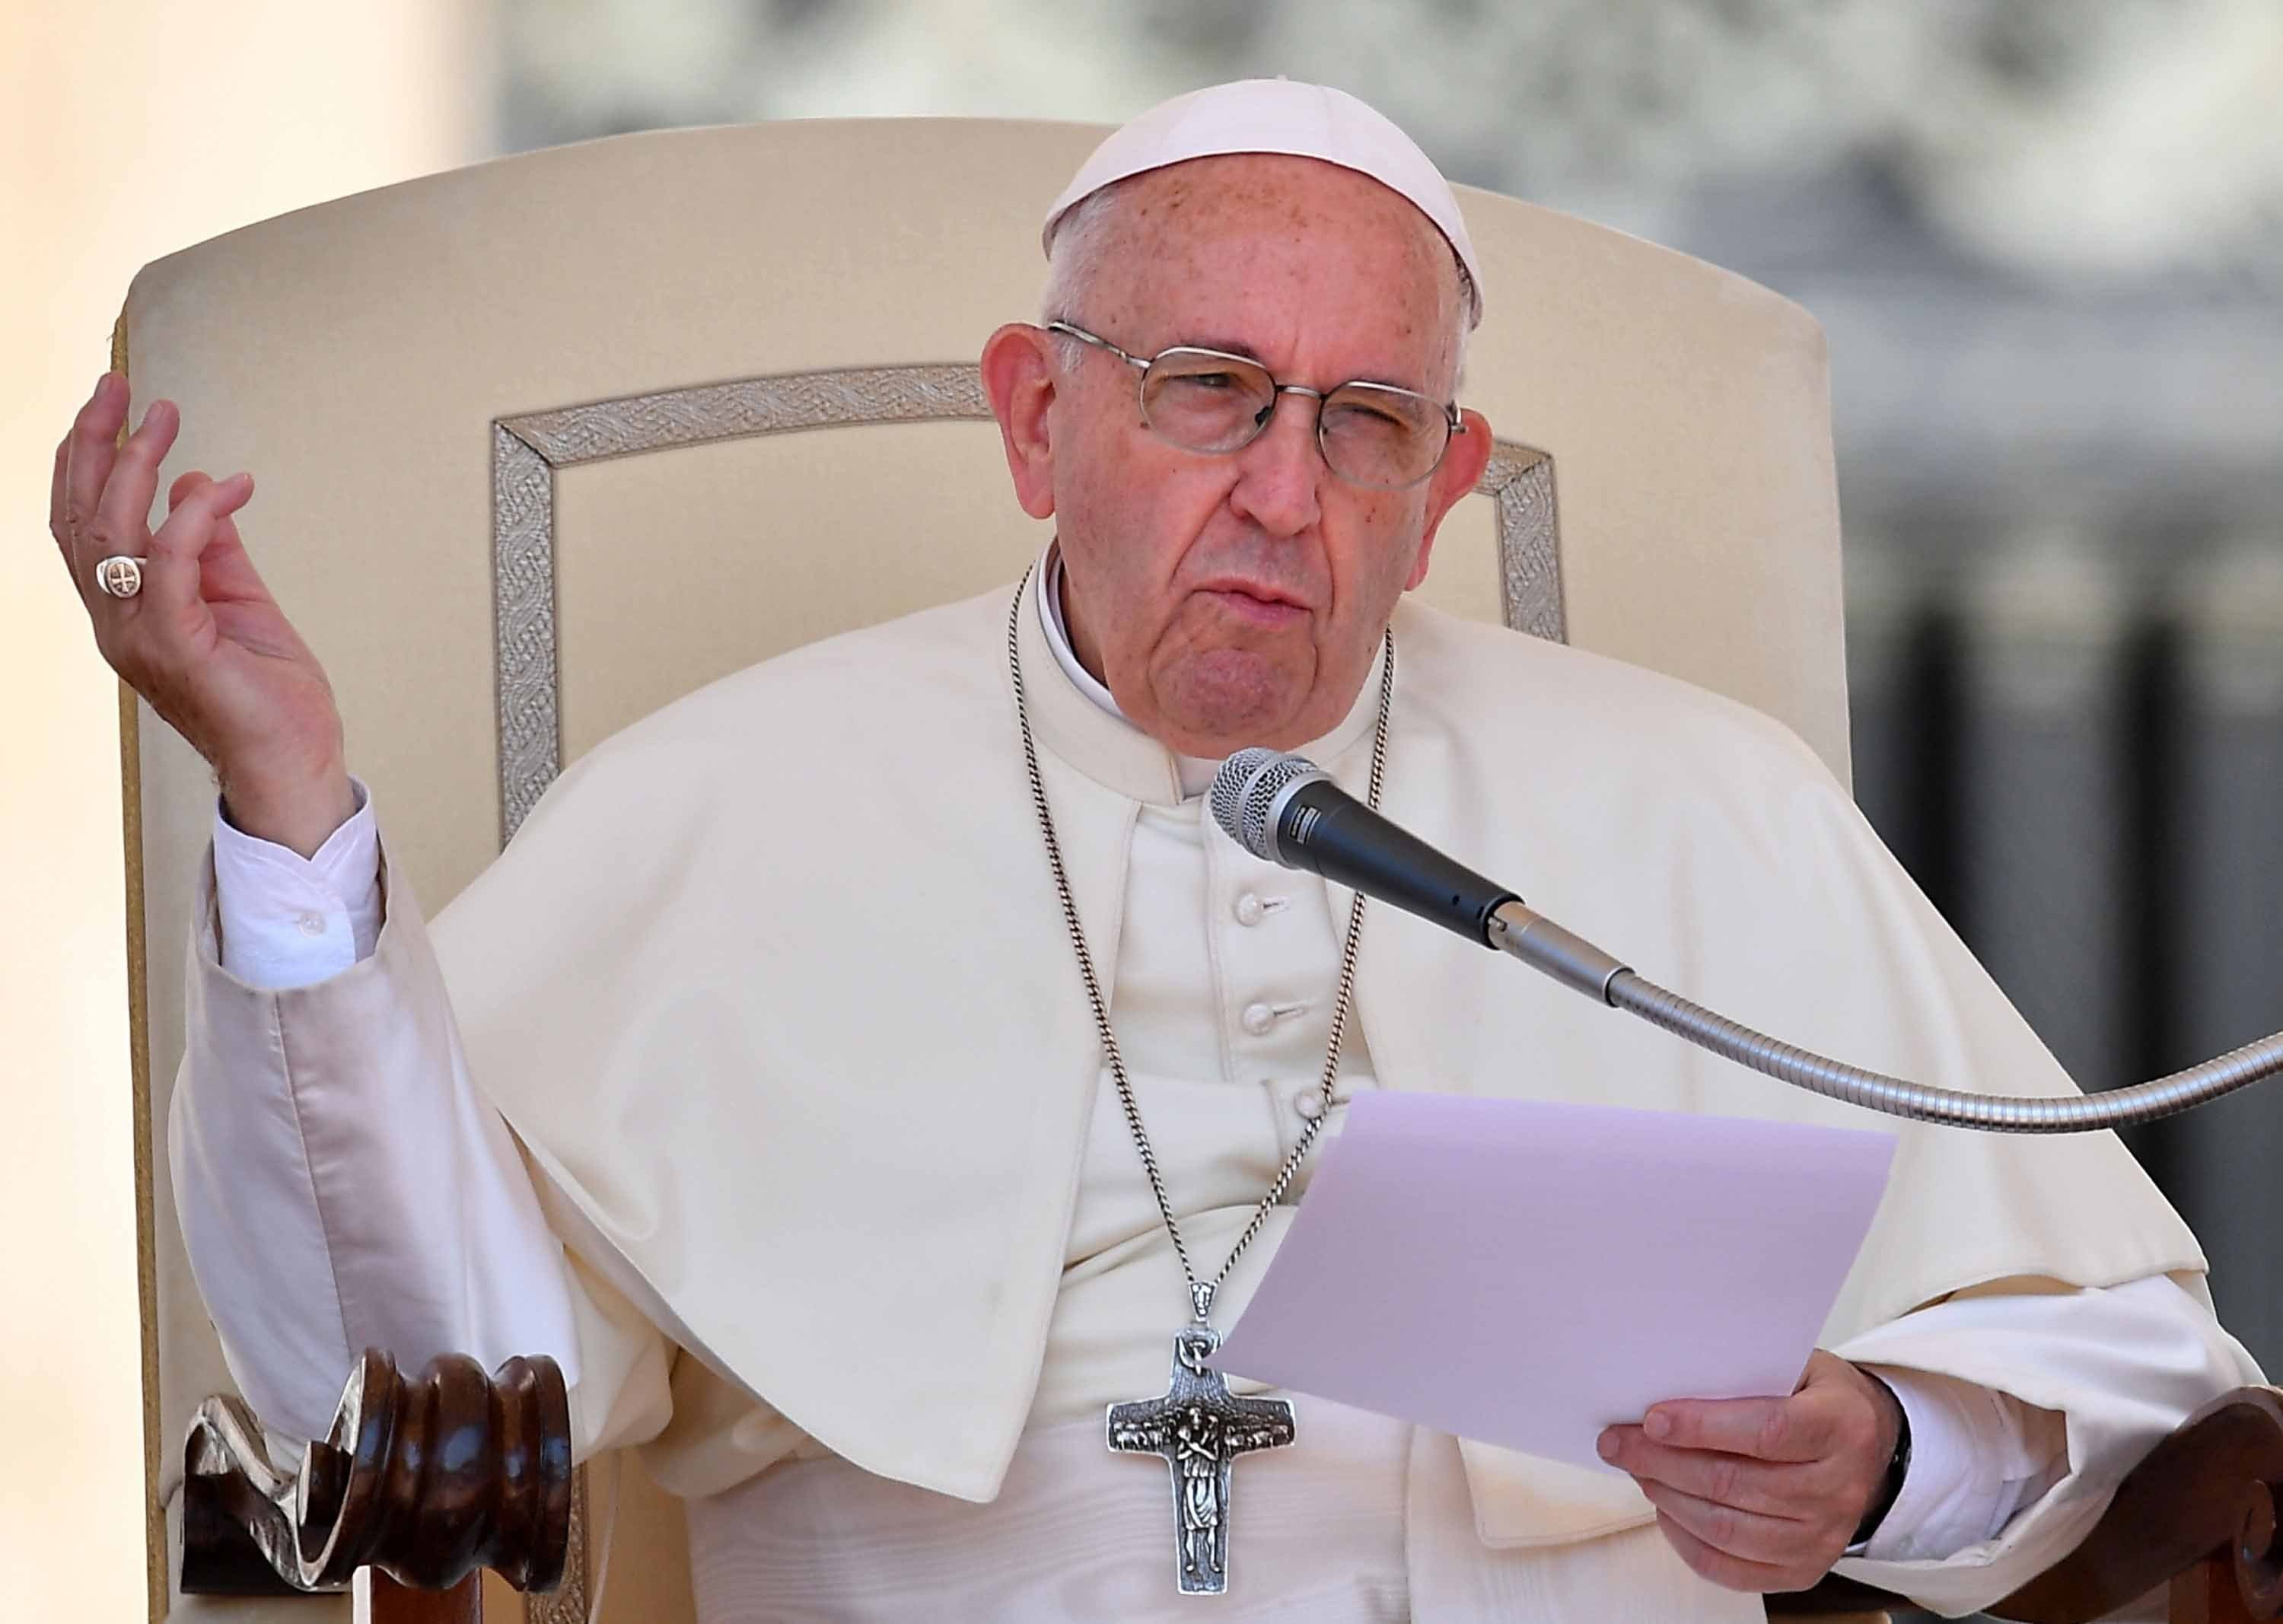 """Pope Francis has acknowledged """"with shame and repentance"""" the Catholic Church's failure to act over sexual abuse by clerics against minors going back decades, writing """"we showed no care for the little ones; we abandoned them."""" (FILE)"""